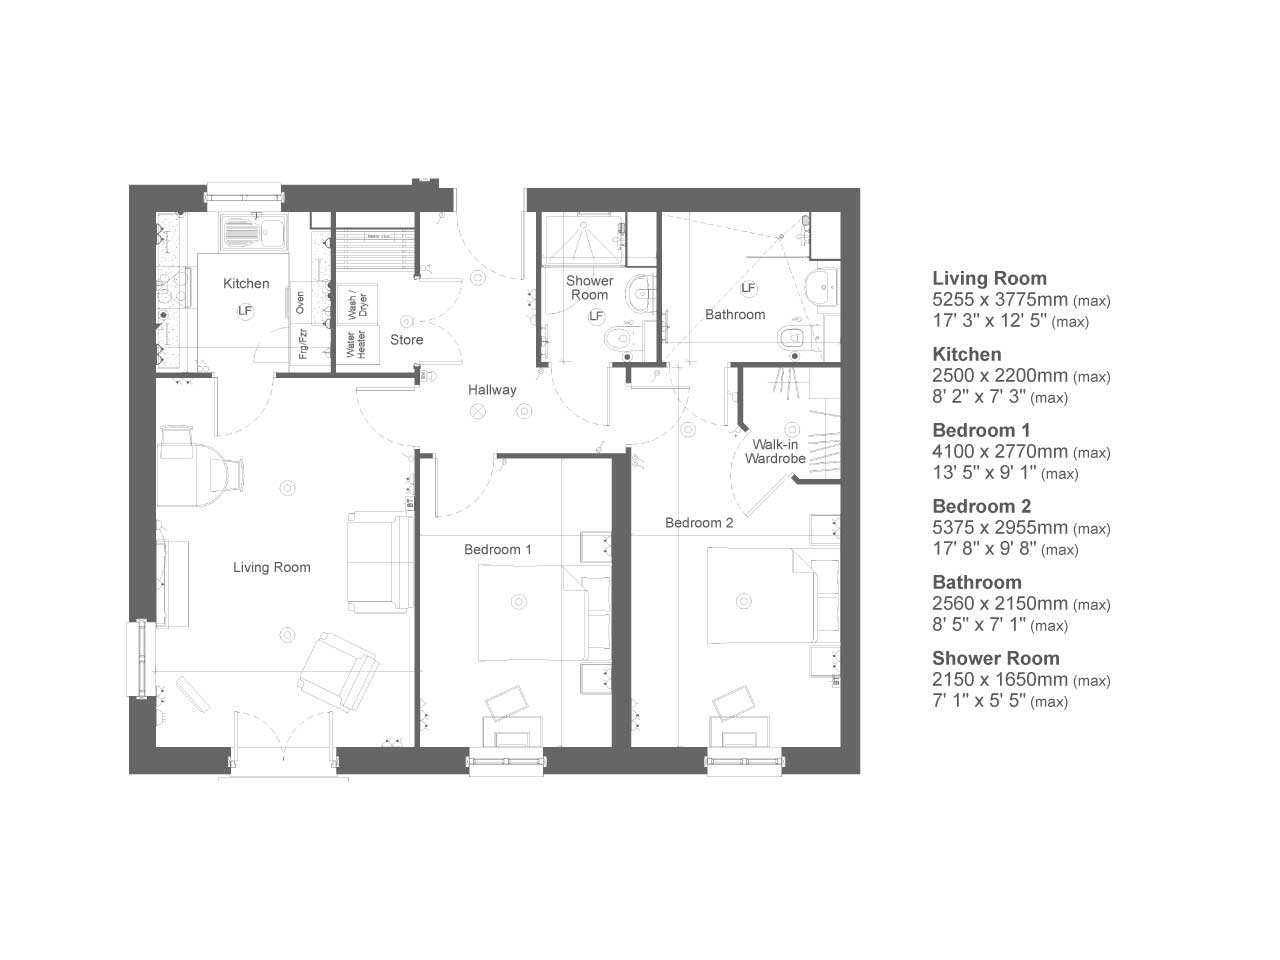 Retirement Property Typical 2 bedroom Priced at £259,999